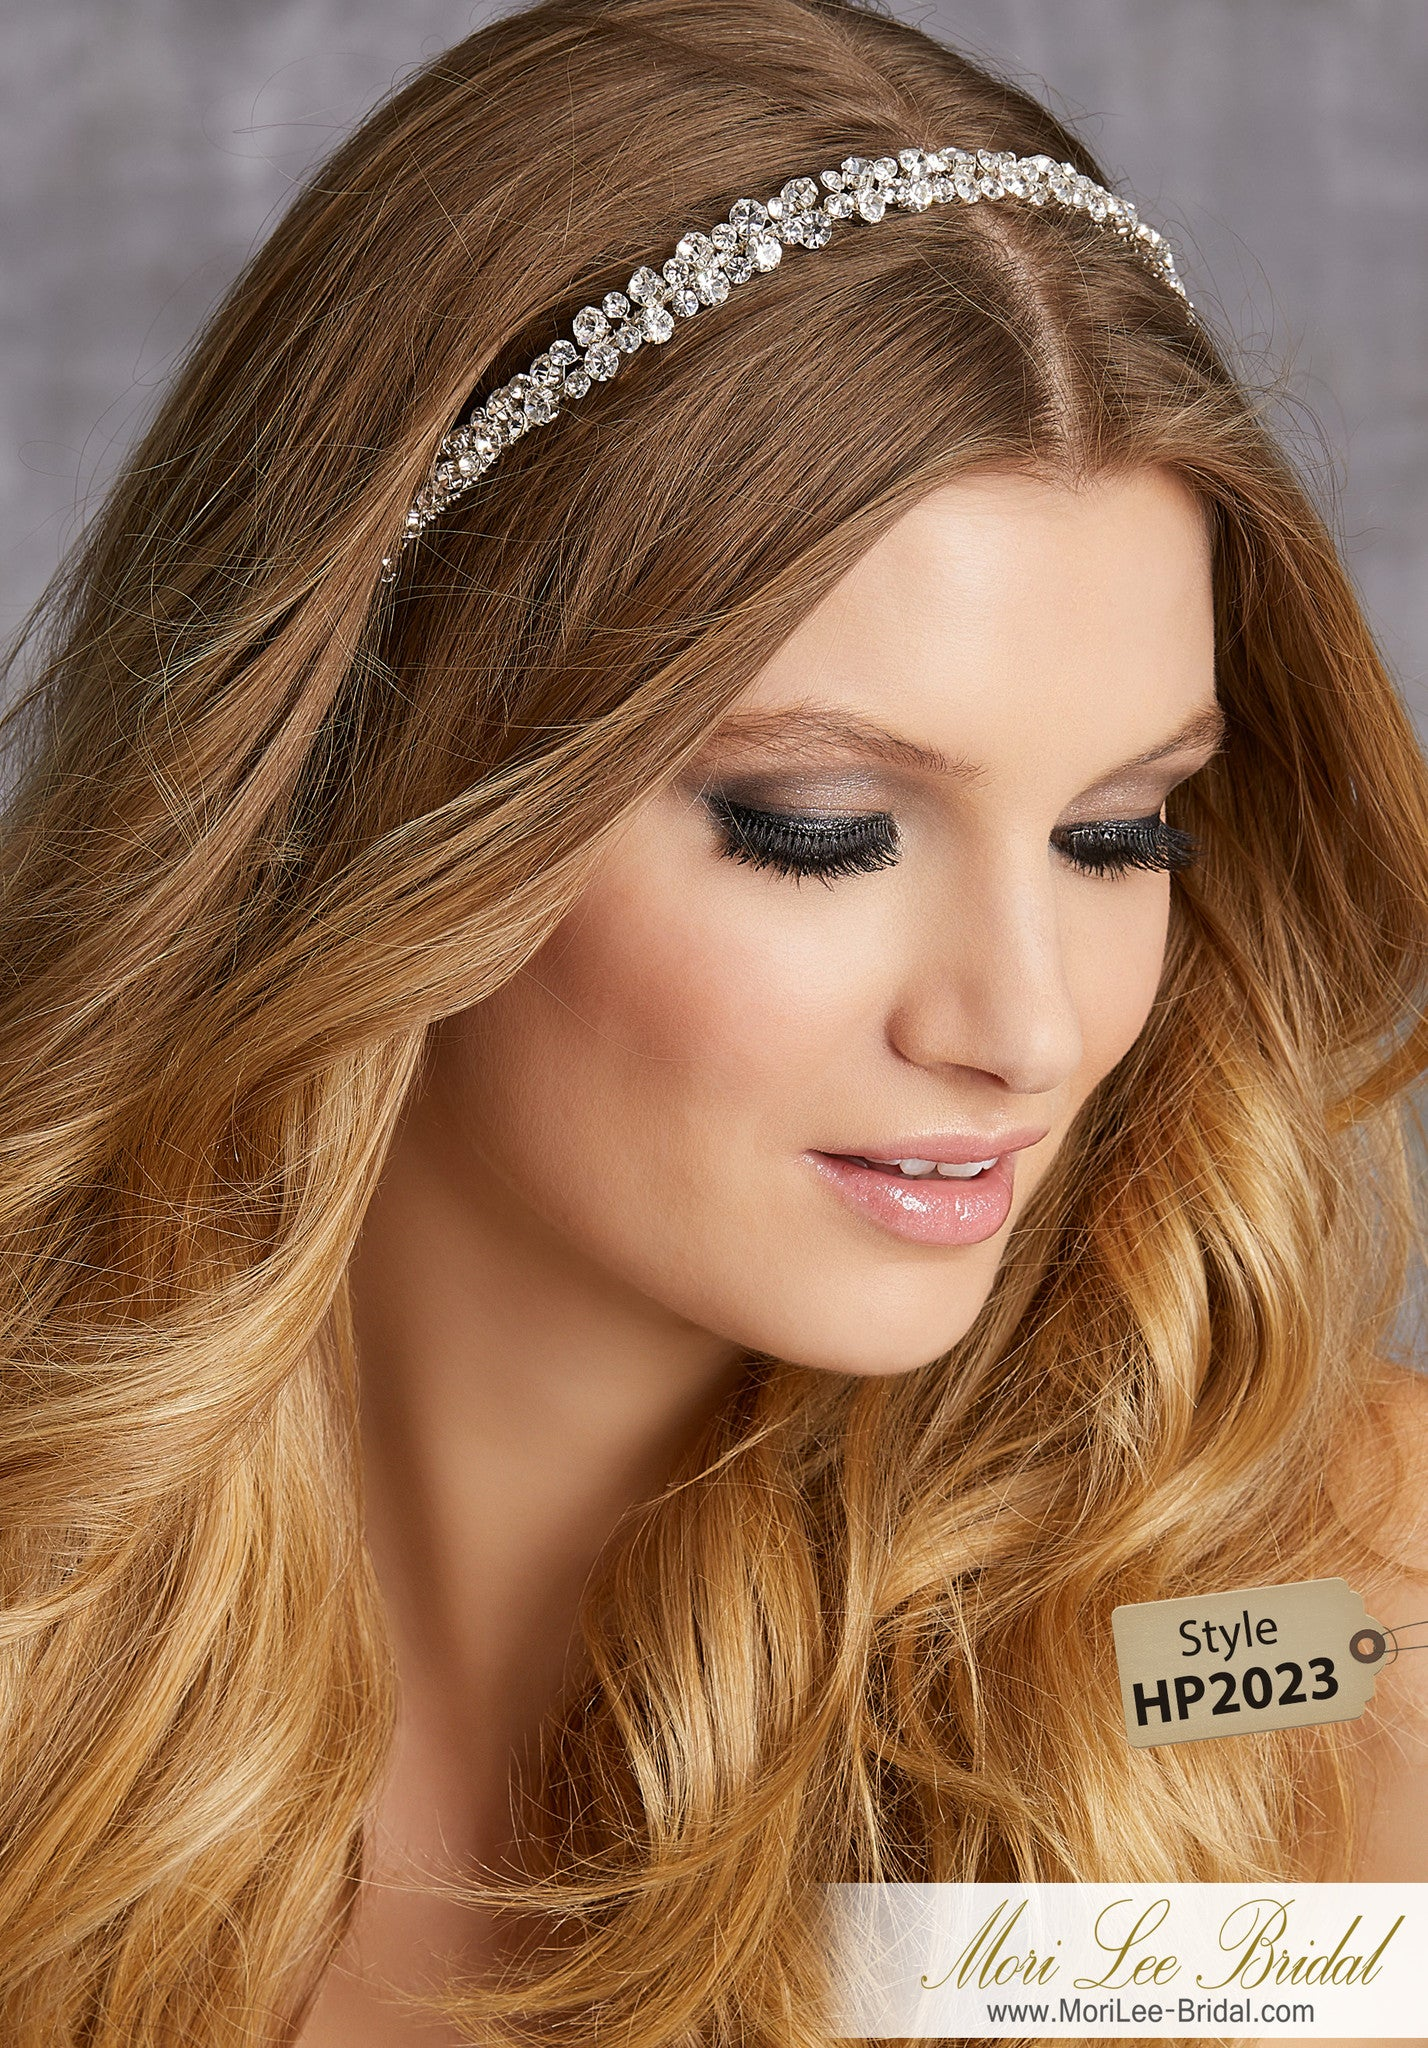 HP2023 - Mori Lee Bridal